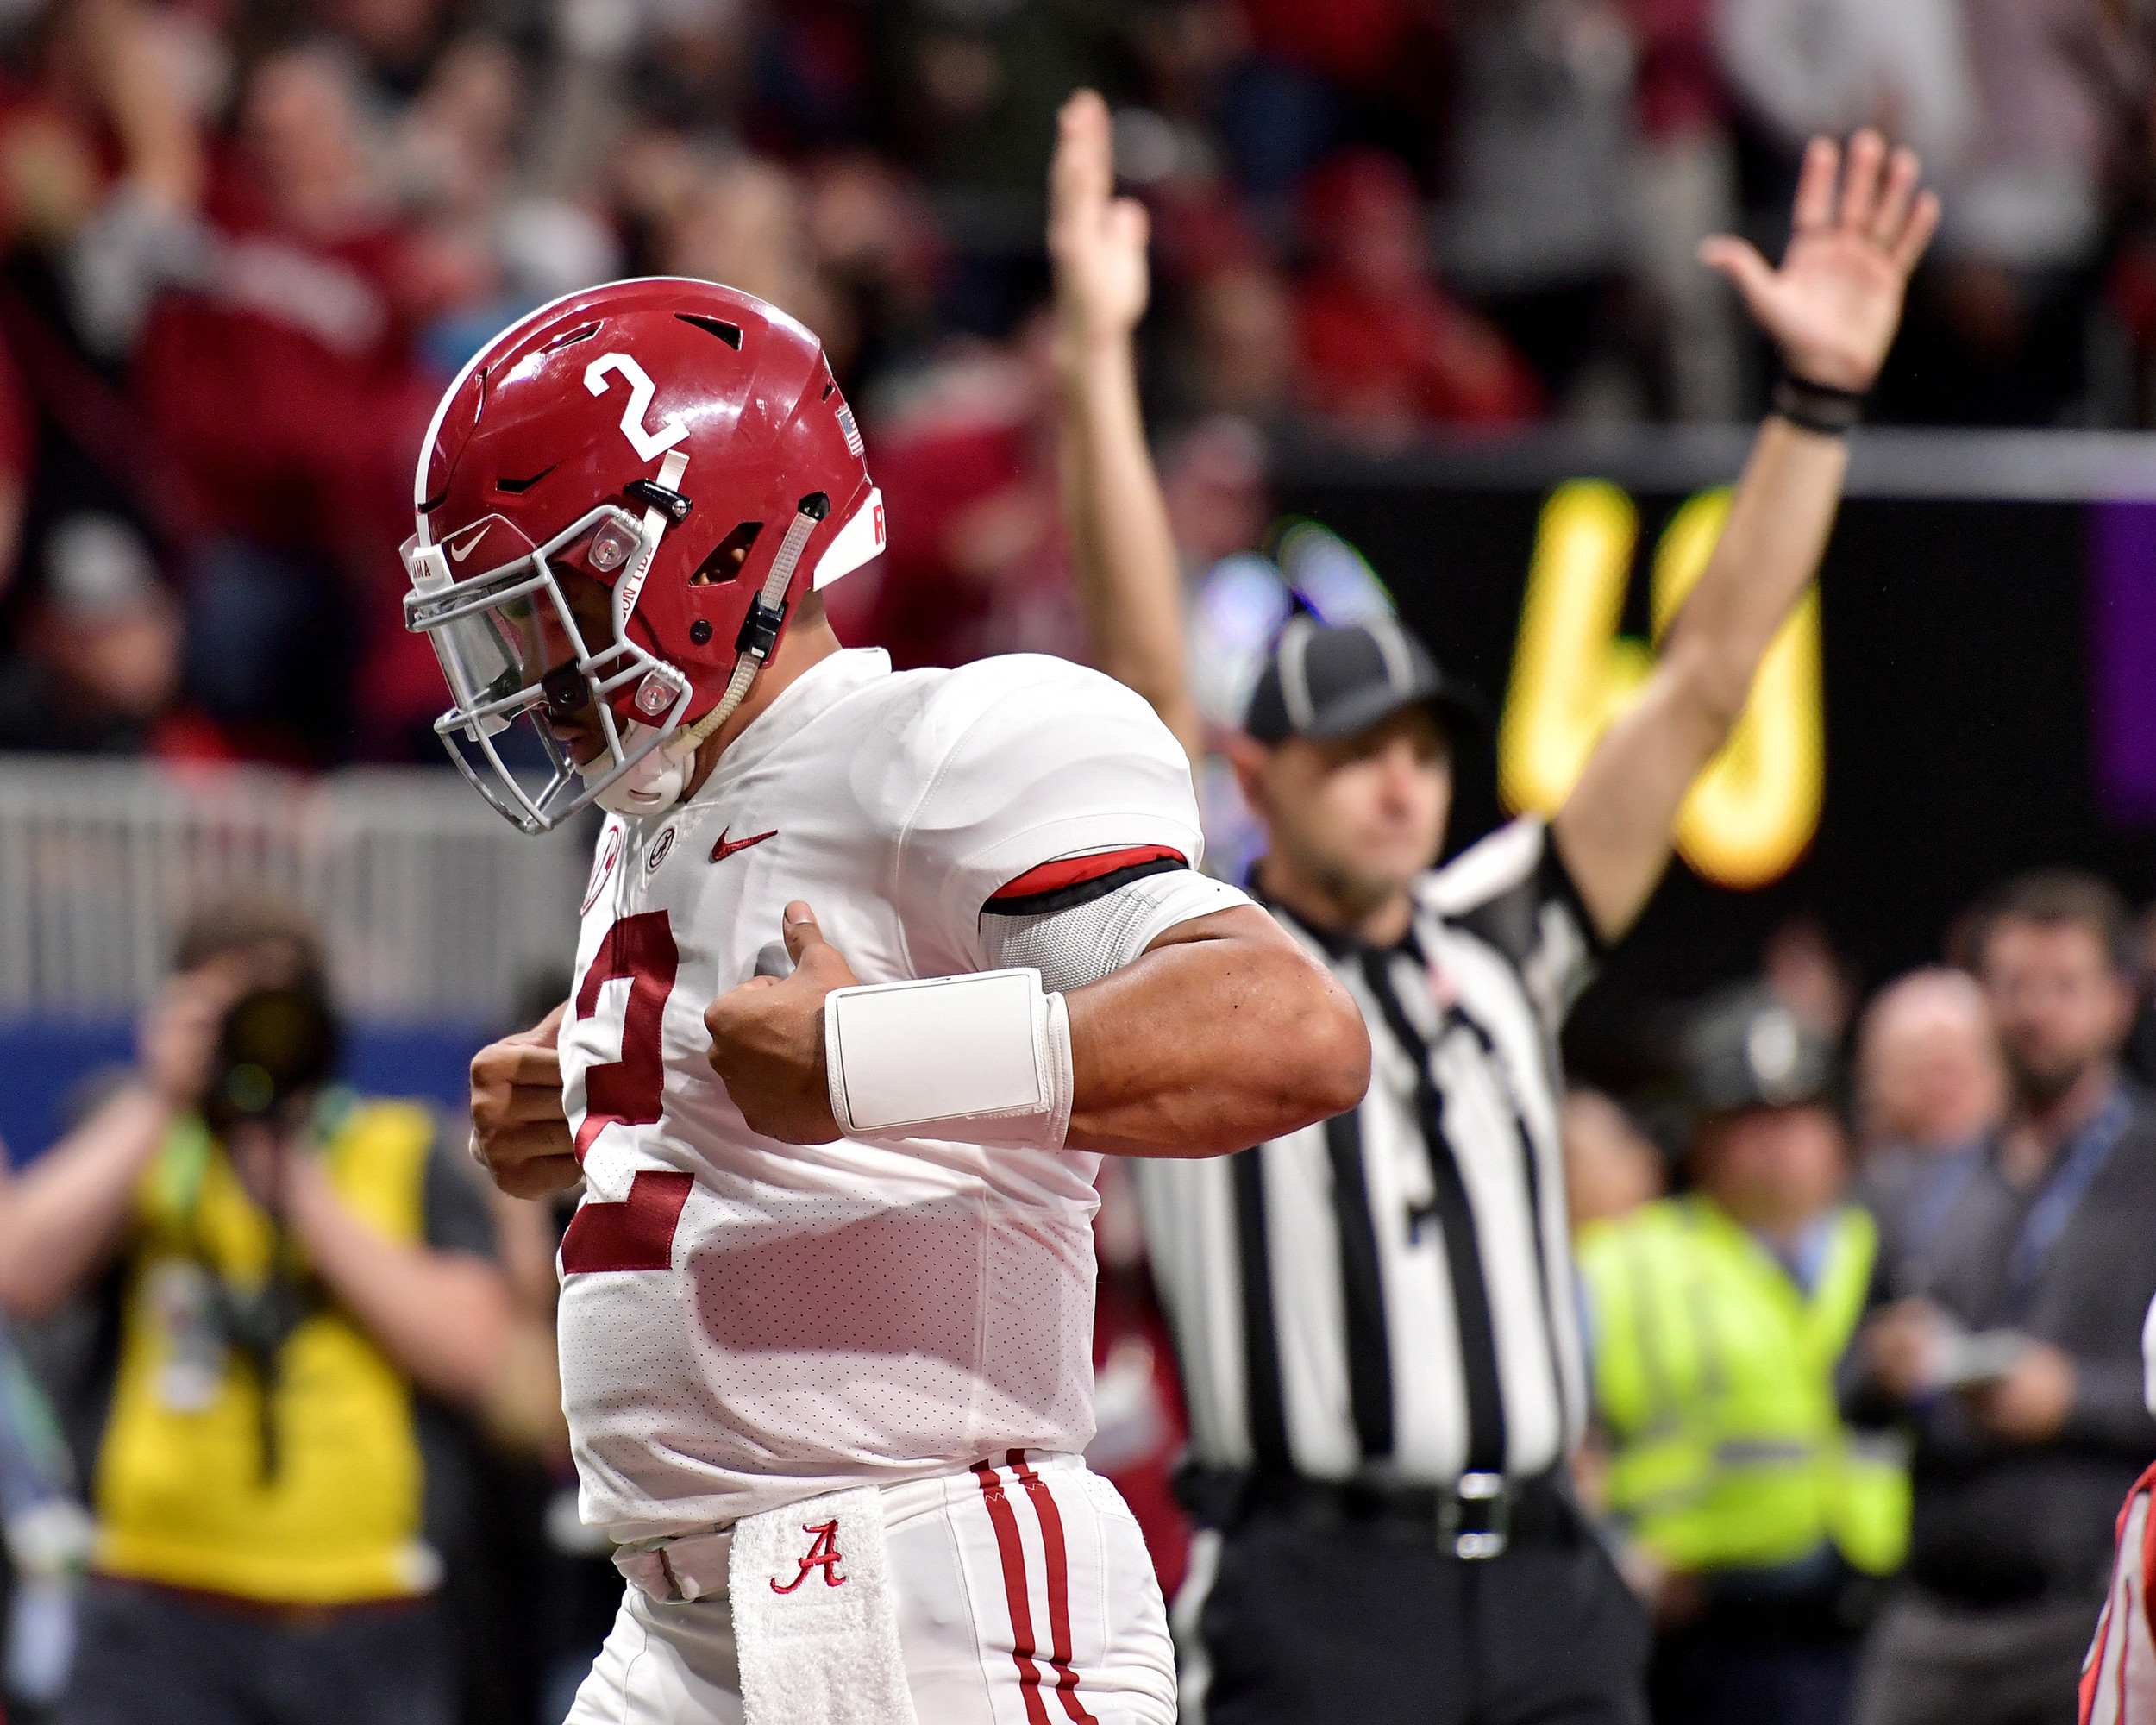 Alabama Crimson Tide quarterback Jalen Hurts (2) celebrates his game-winning touchdown late in the fourth quarter of the 2018 SEC Championship football game against the Georgia Bulldogs at Mercedes-Benz Stadium in Atlanta, Ga., on Dec. 1, 2018. Alabama wins 35-28. (Photo by Lee Walls)